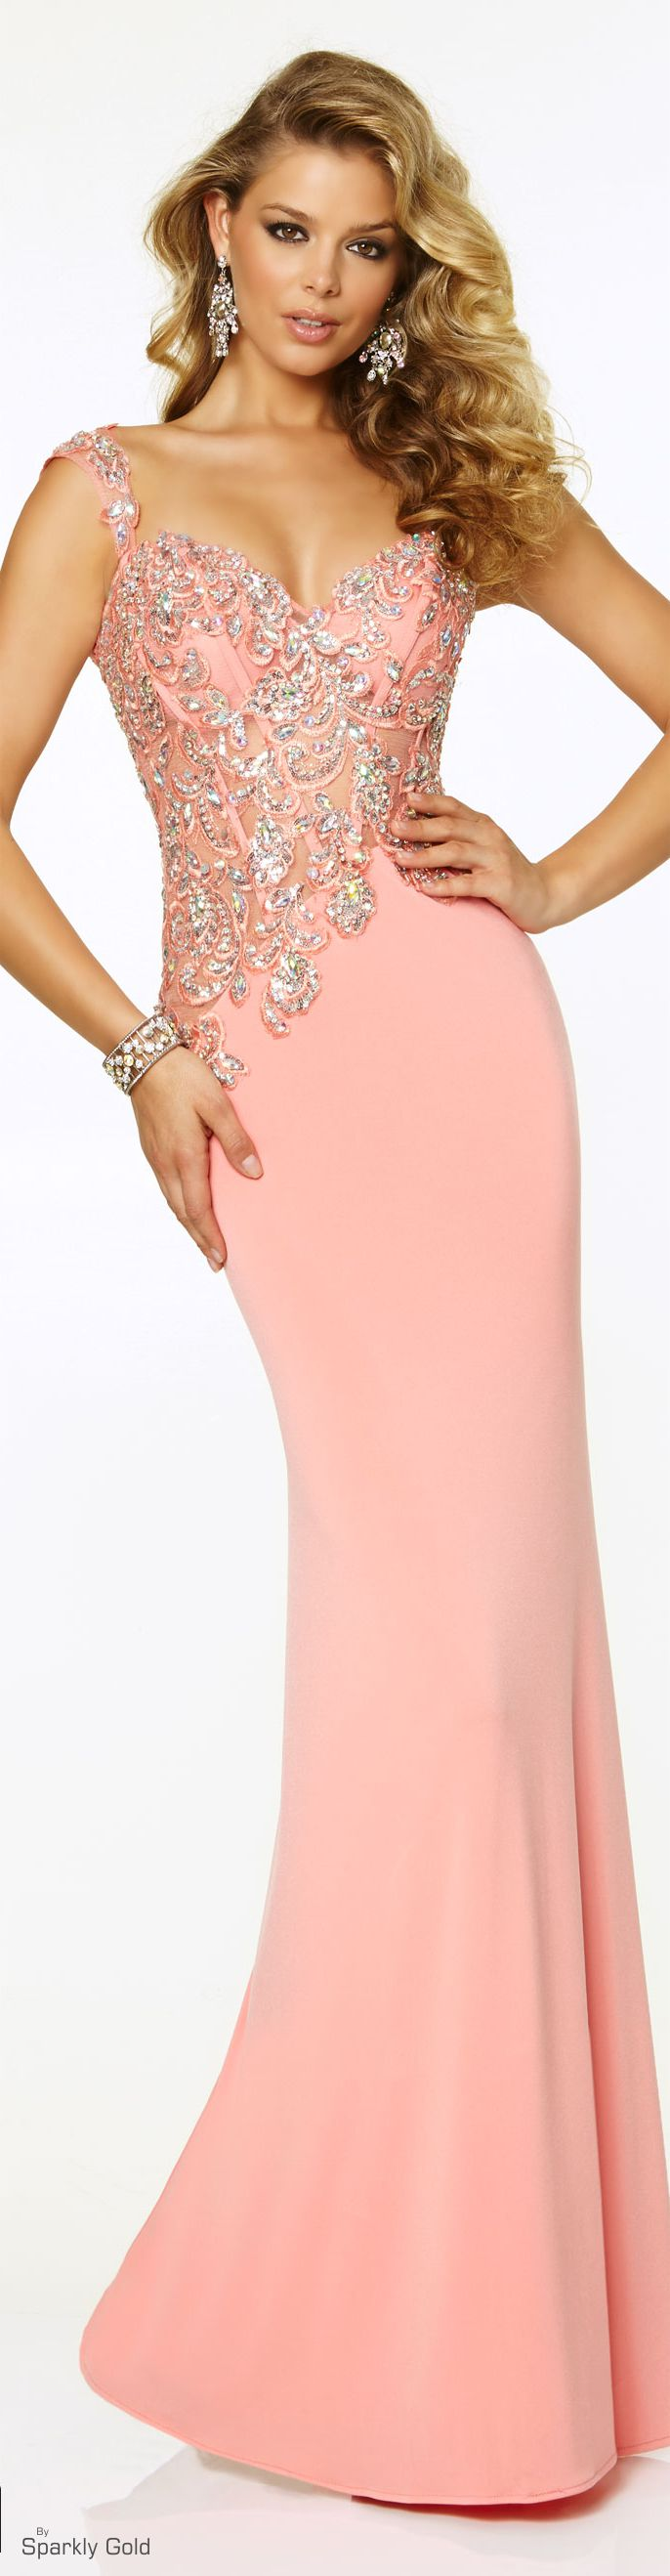 MORI LEE | PAPARAZZI | Bejewelled Coral Jersey-Knit Gown | #97016 ...